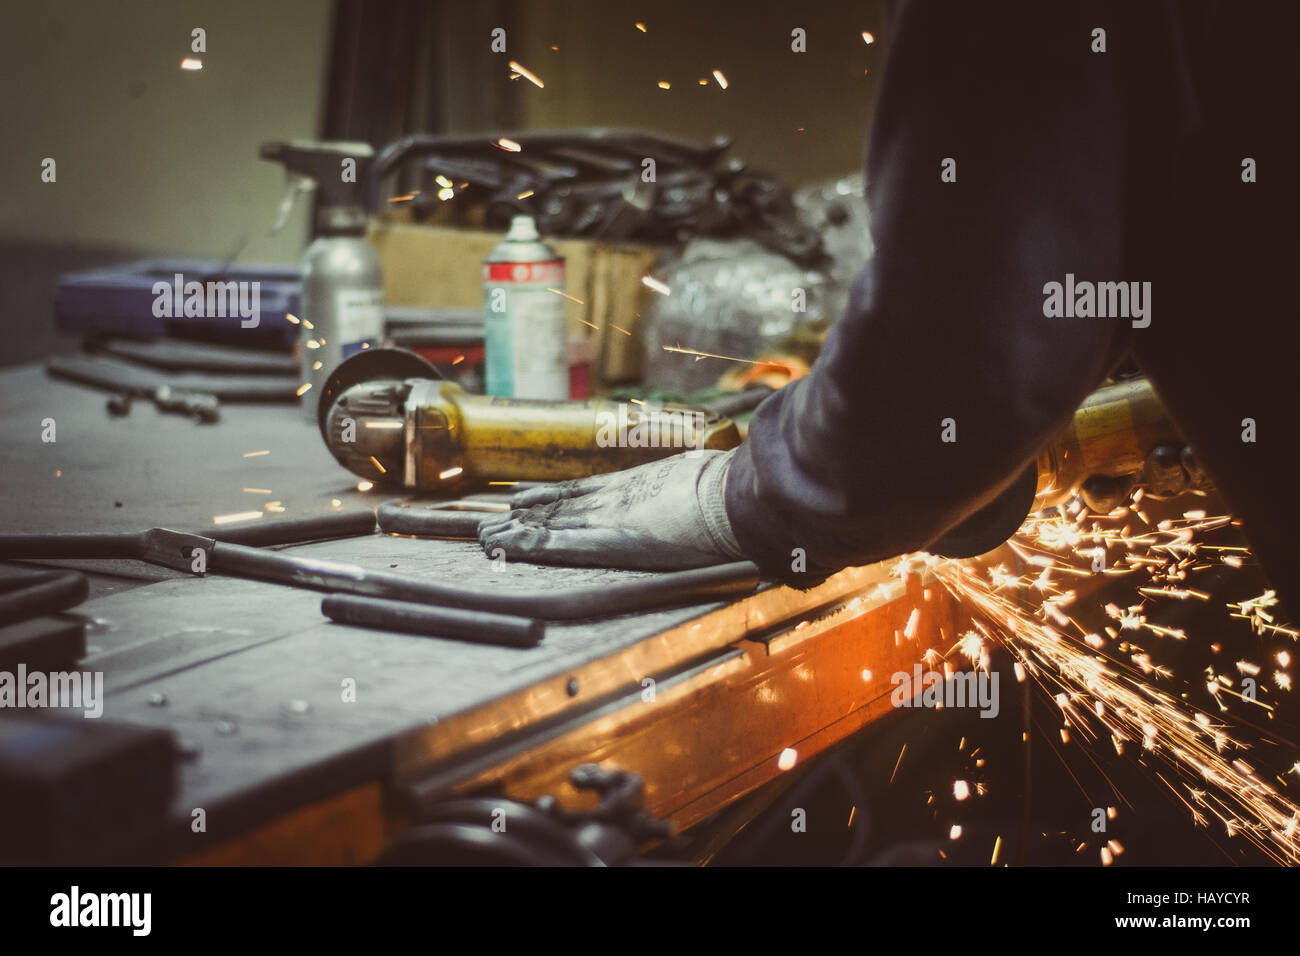 Worker cutting pieces of round pipe with an angle grinder on a busy workshop table, producing sparks - Stock Image